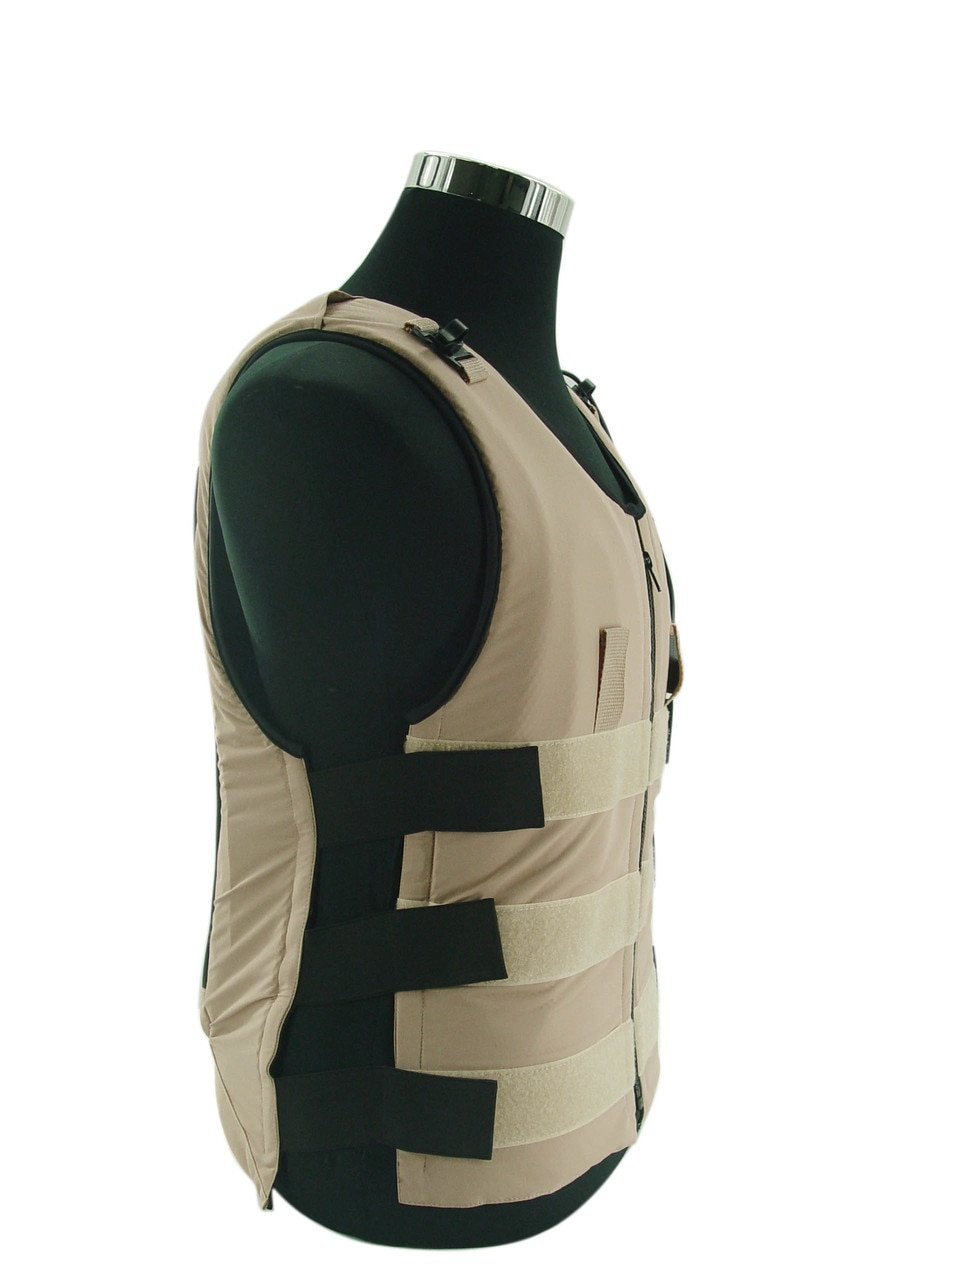 Ice Water Circulating Cooling Vest Tan Detachable Bladder XL-2XL by Compcooler (Image #8)